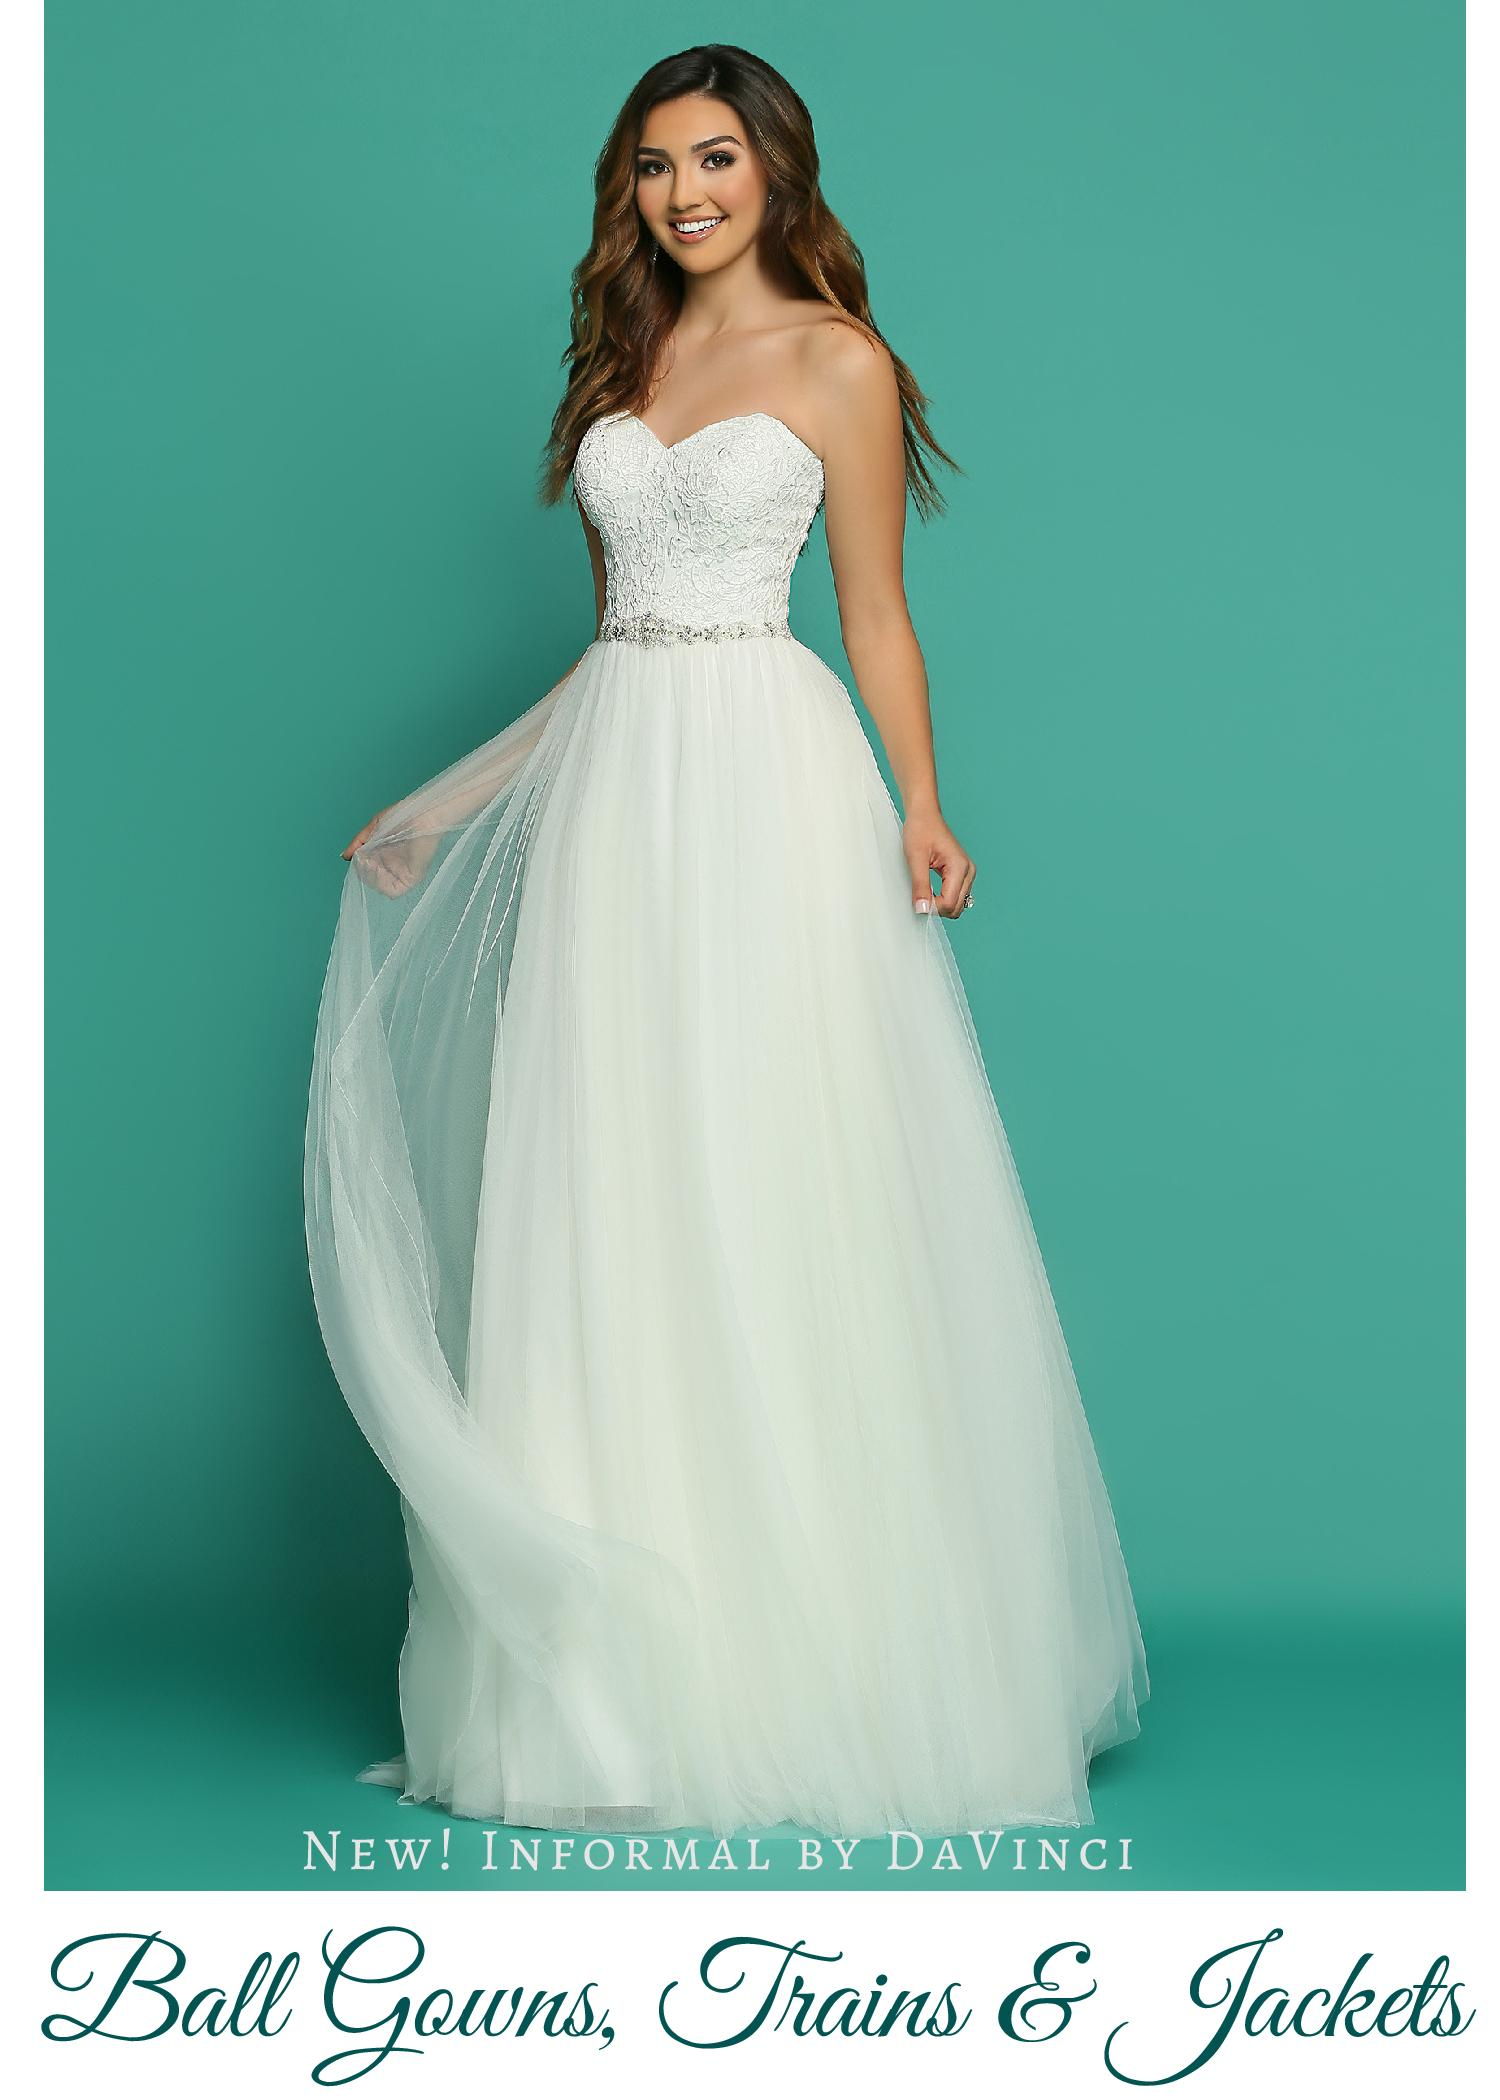 Informal Destination Wedding Dresses: Ball Gowns, Detachable Trains ...